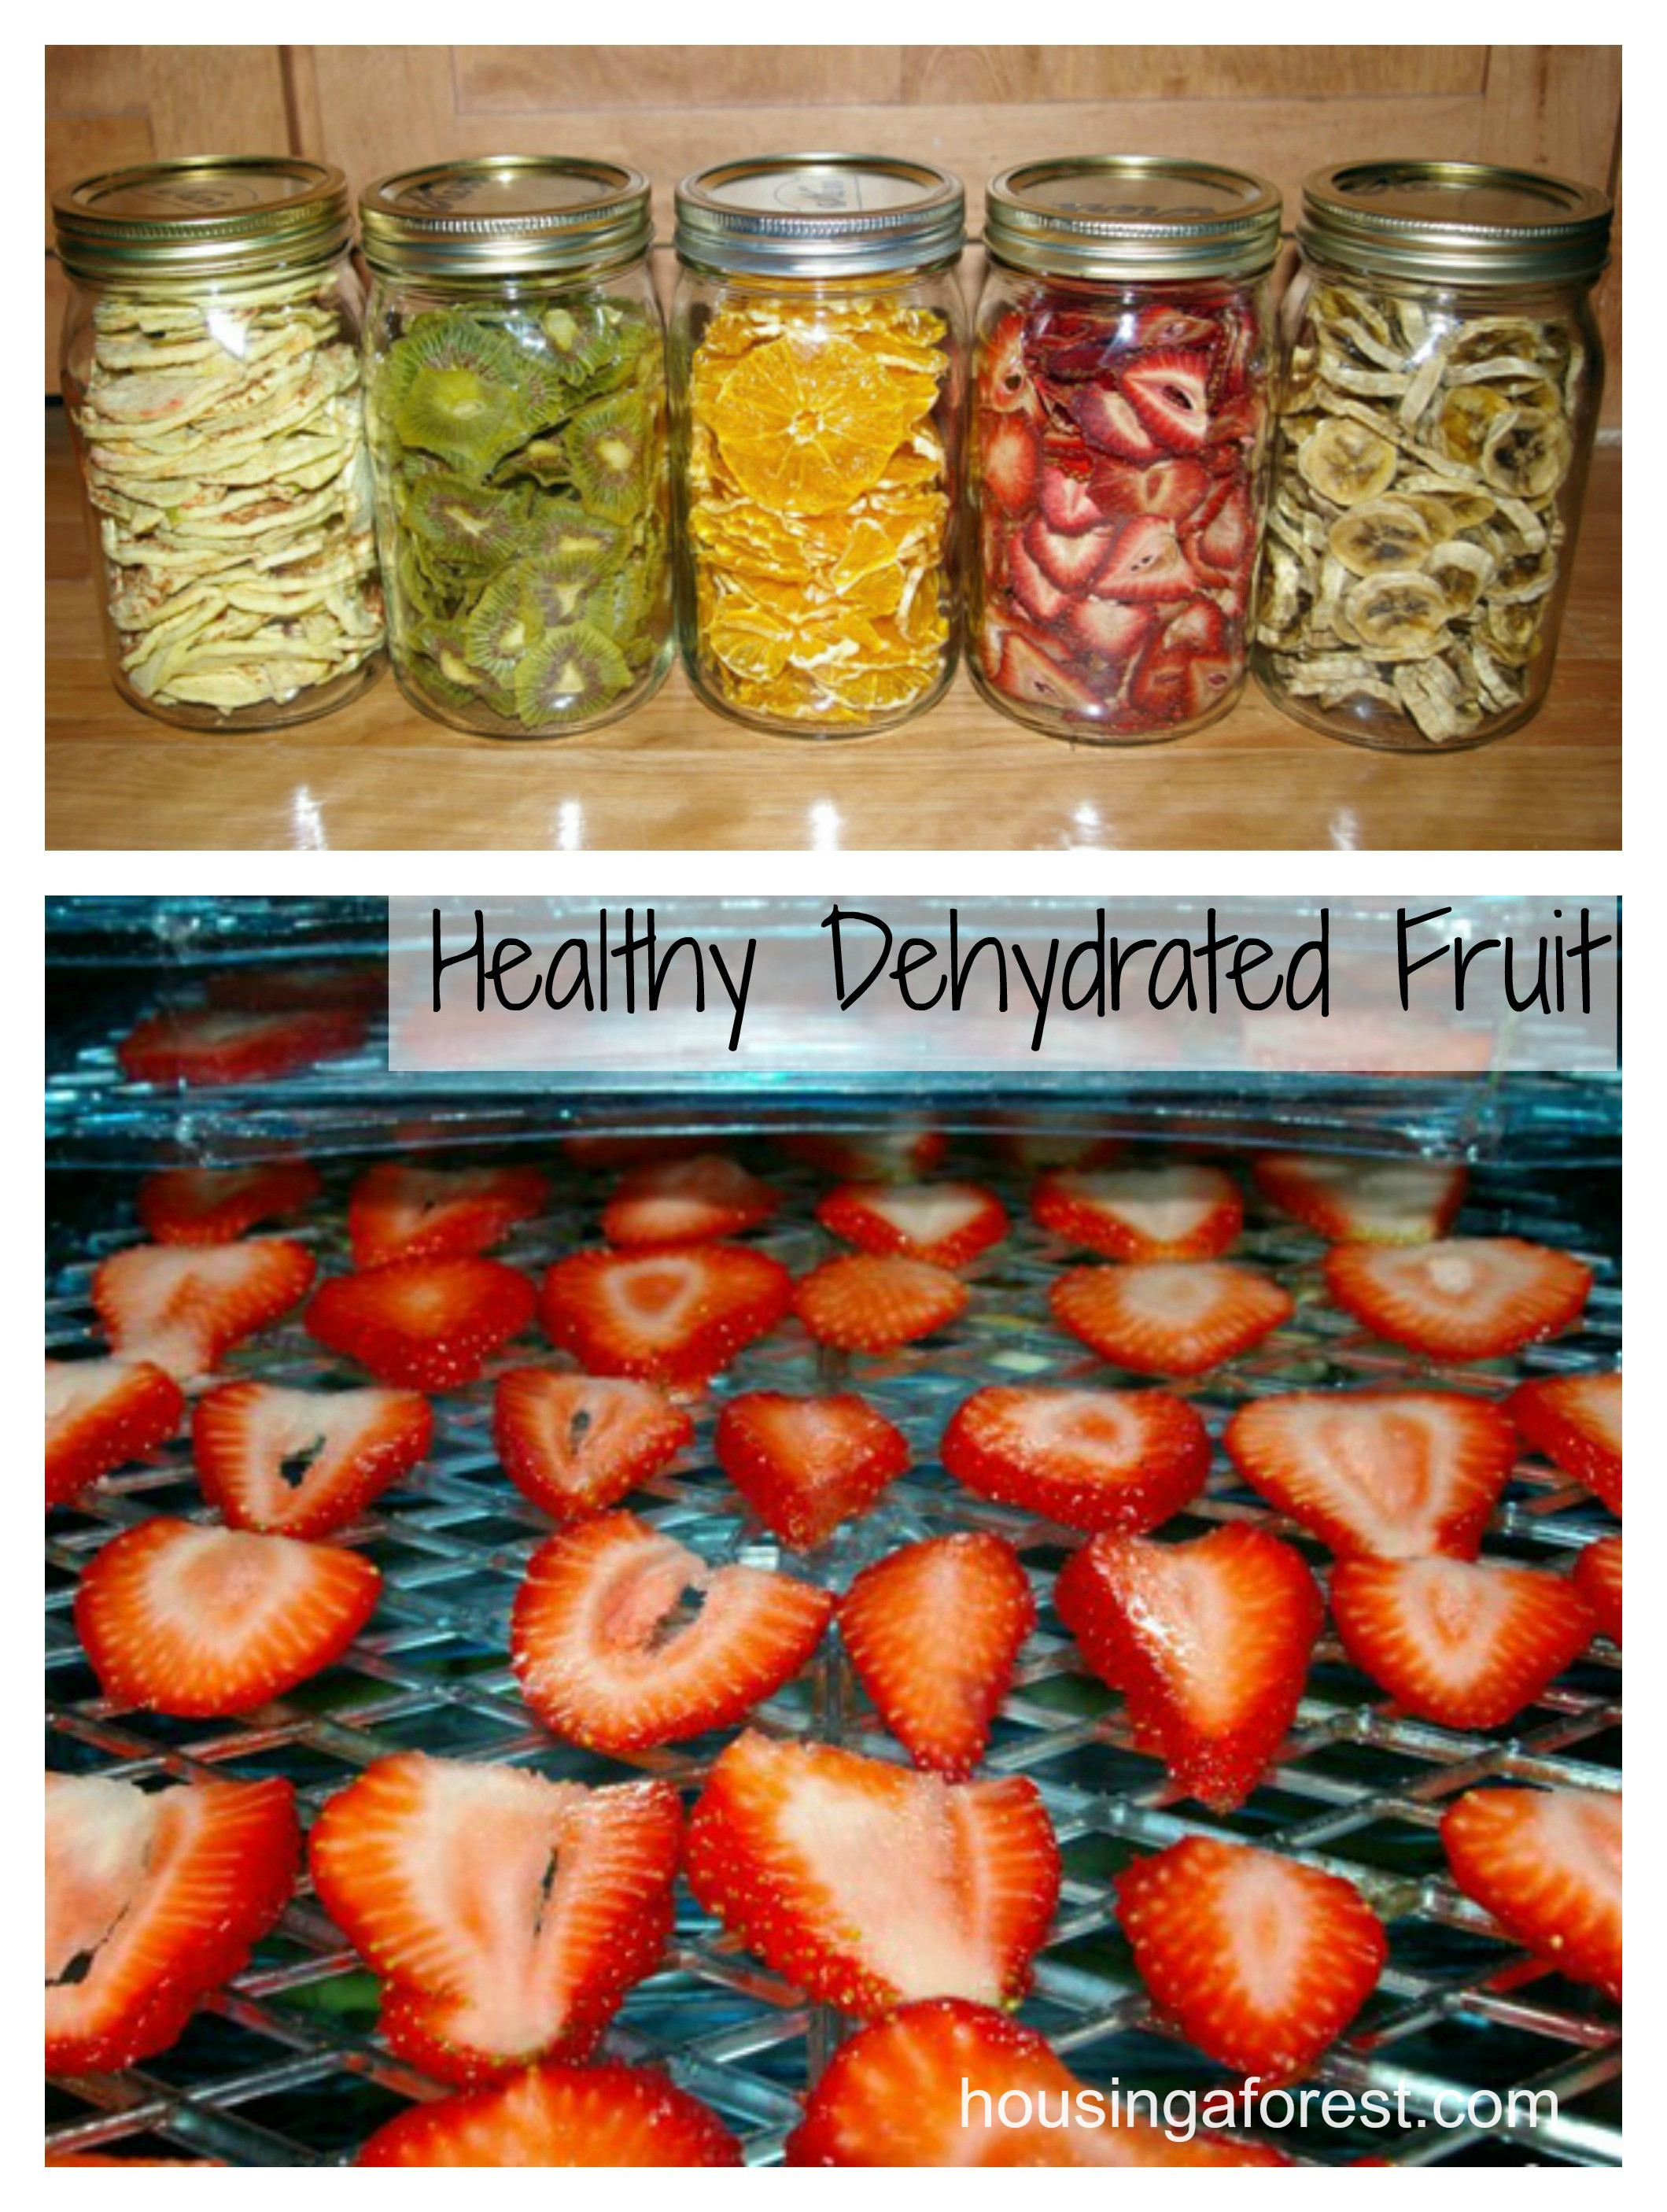 Healthy Snacks With Fruit  Healthy Dehydrated Fruit